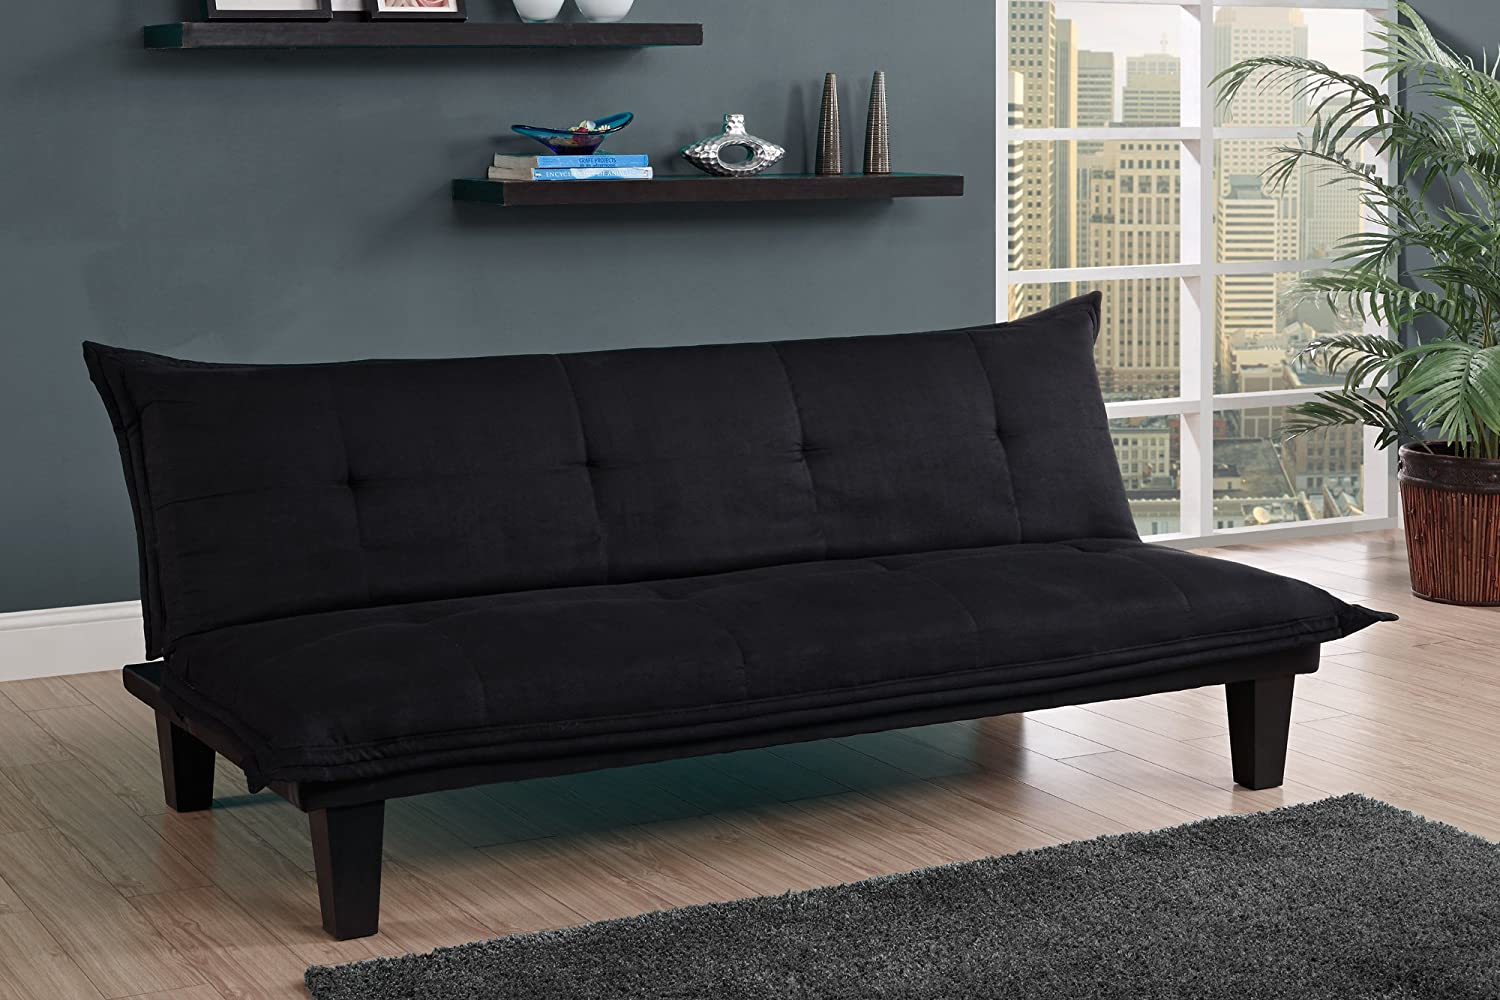 Amazon.com: DHP Lodge Convertible Futon Couch Bed with Microfiber  Upholstery and Wood Legs - Black: Kitchen & Dining